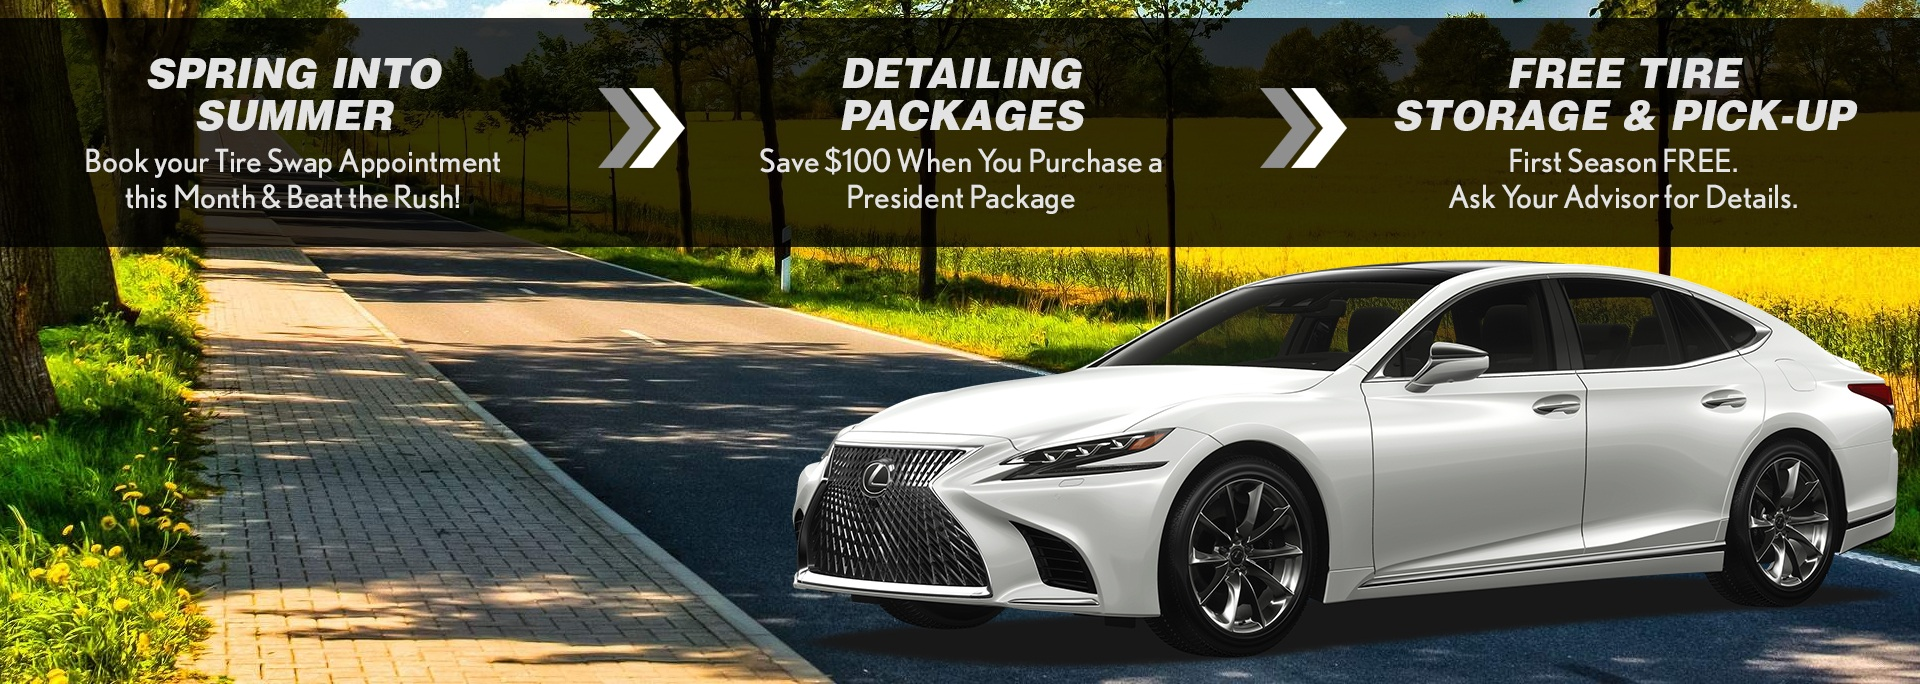 Lexus Service Specials Promotions